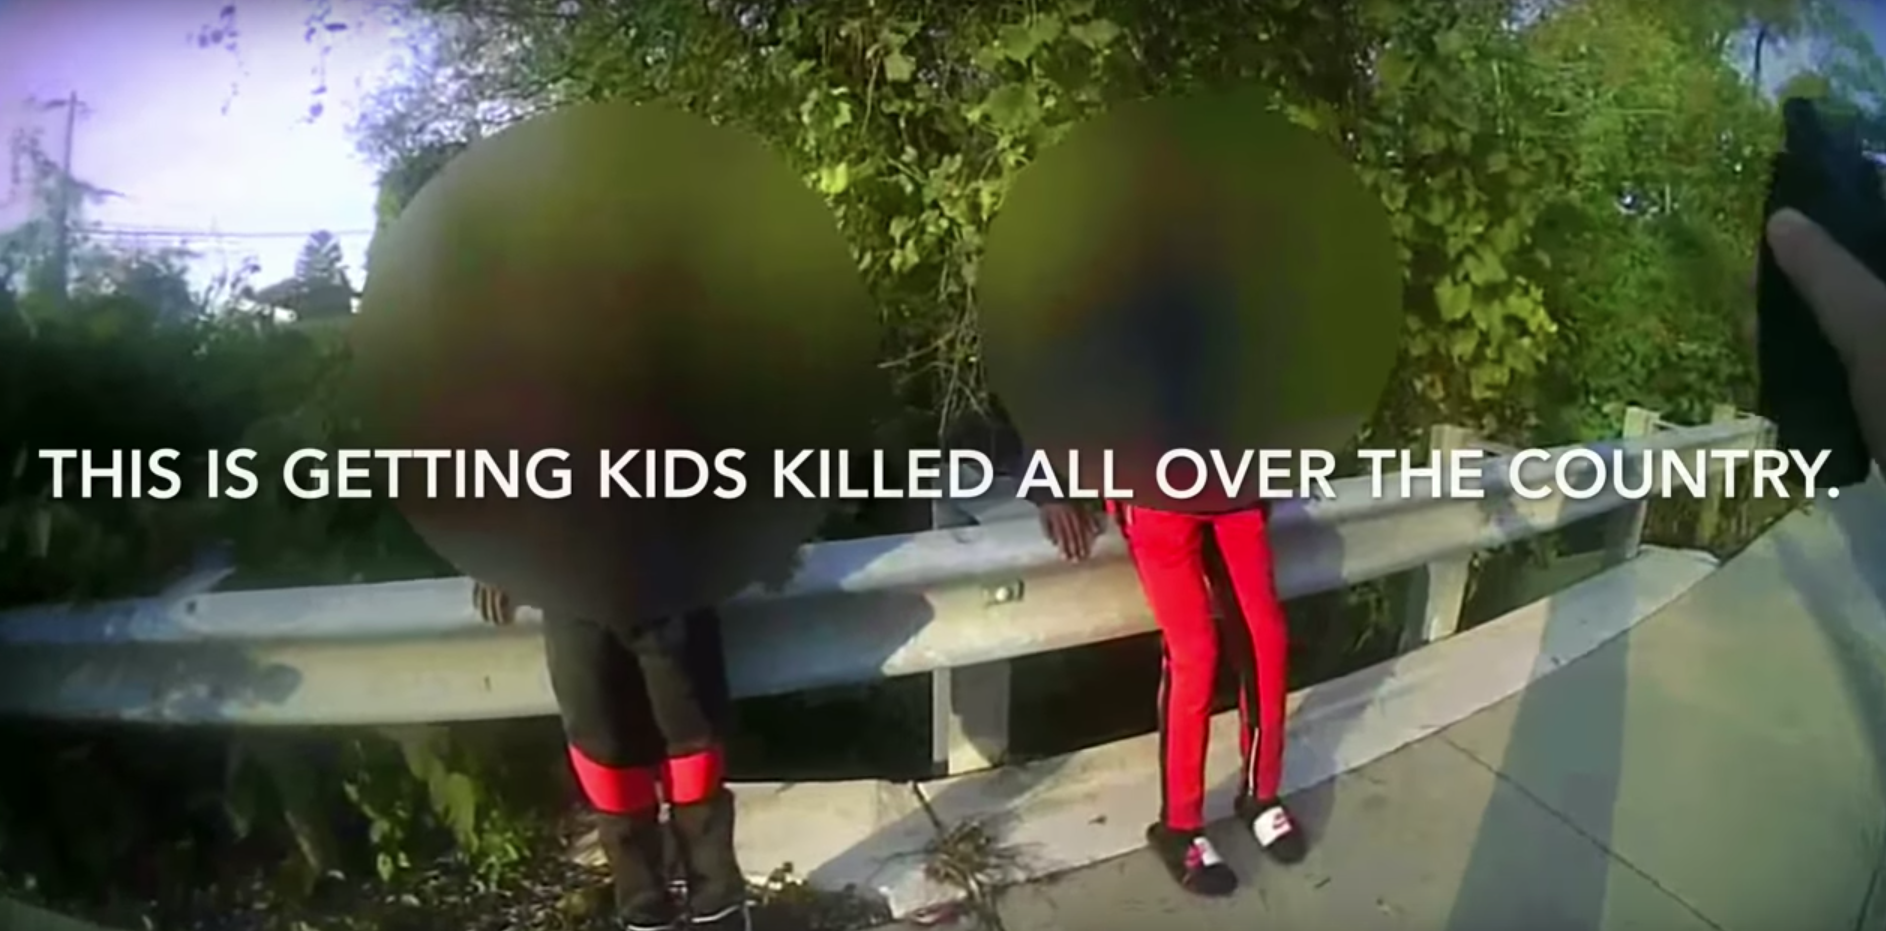 Cop in tense exchange with boys carrying BB gun: 'You think I want to shoot an 11-year-old?'